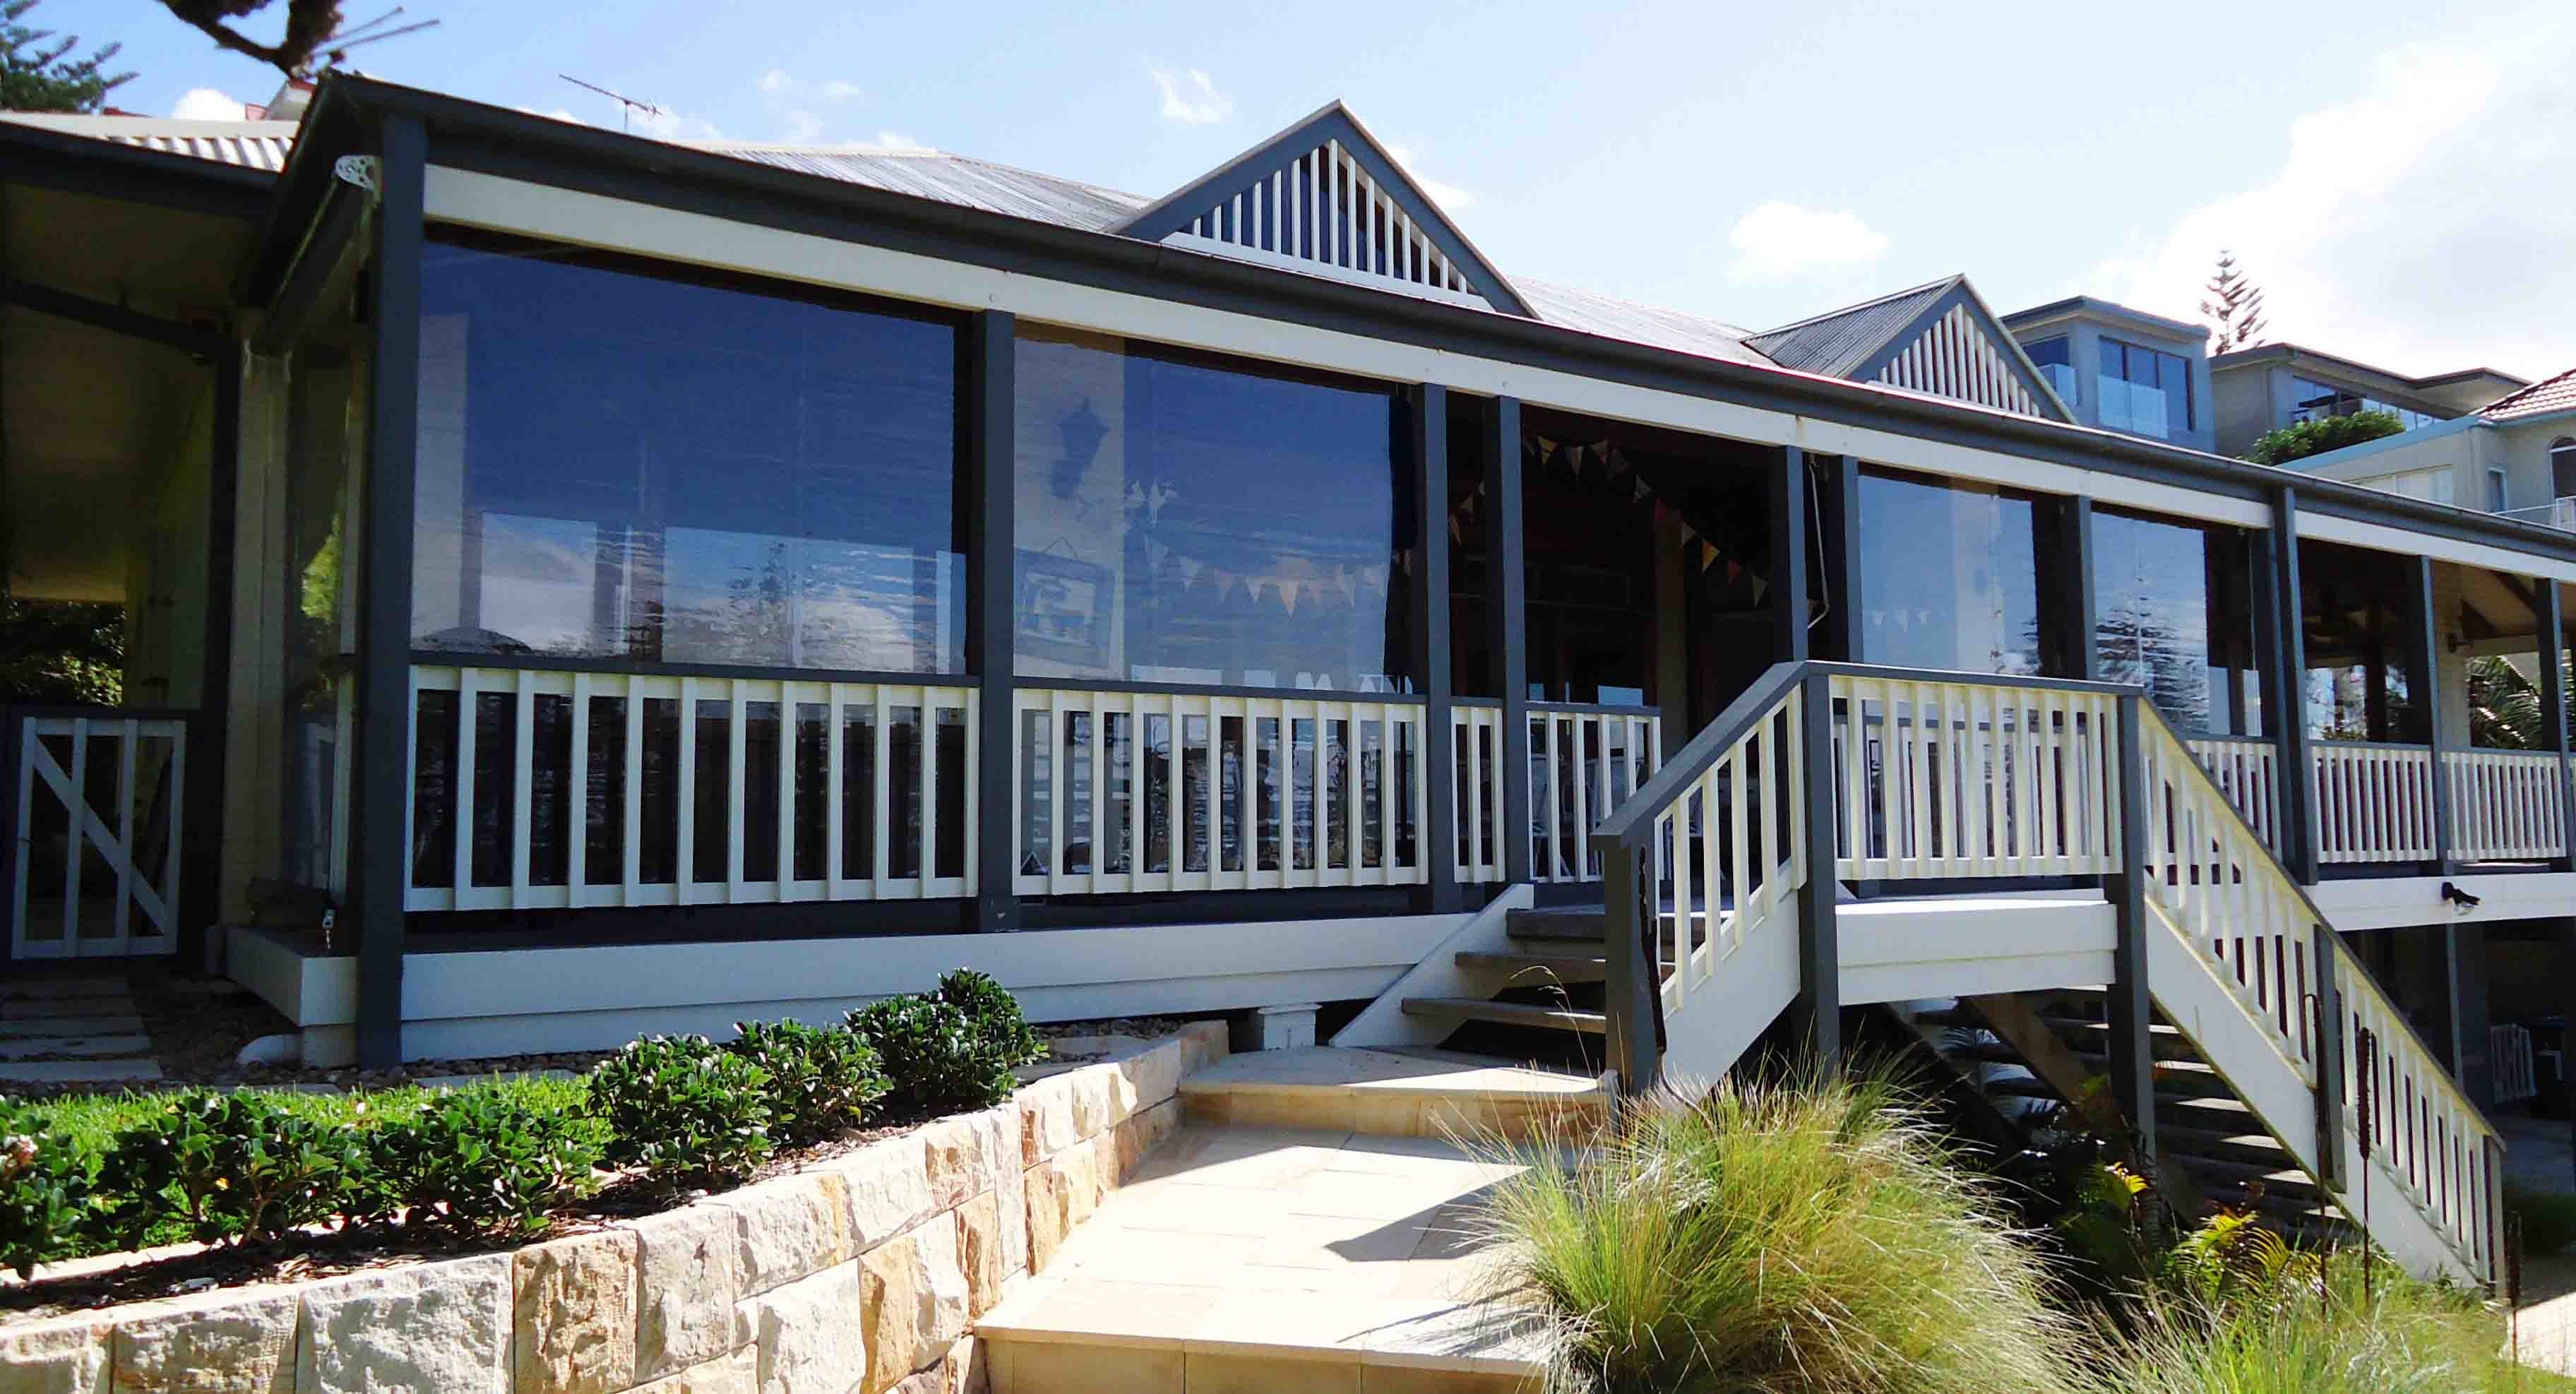 5 Reasons Why You Should Install Outdoor Blinds